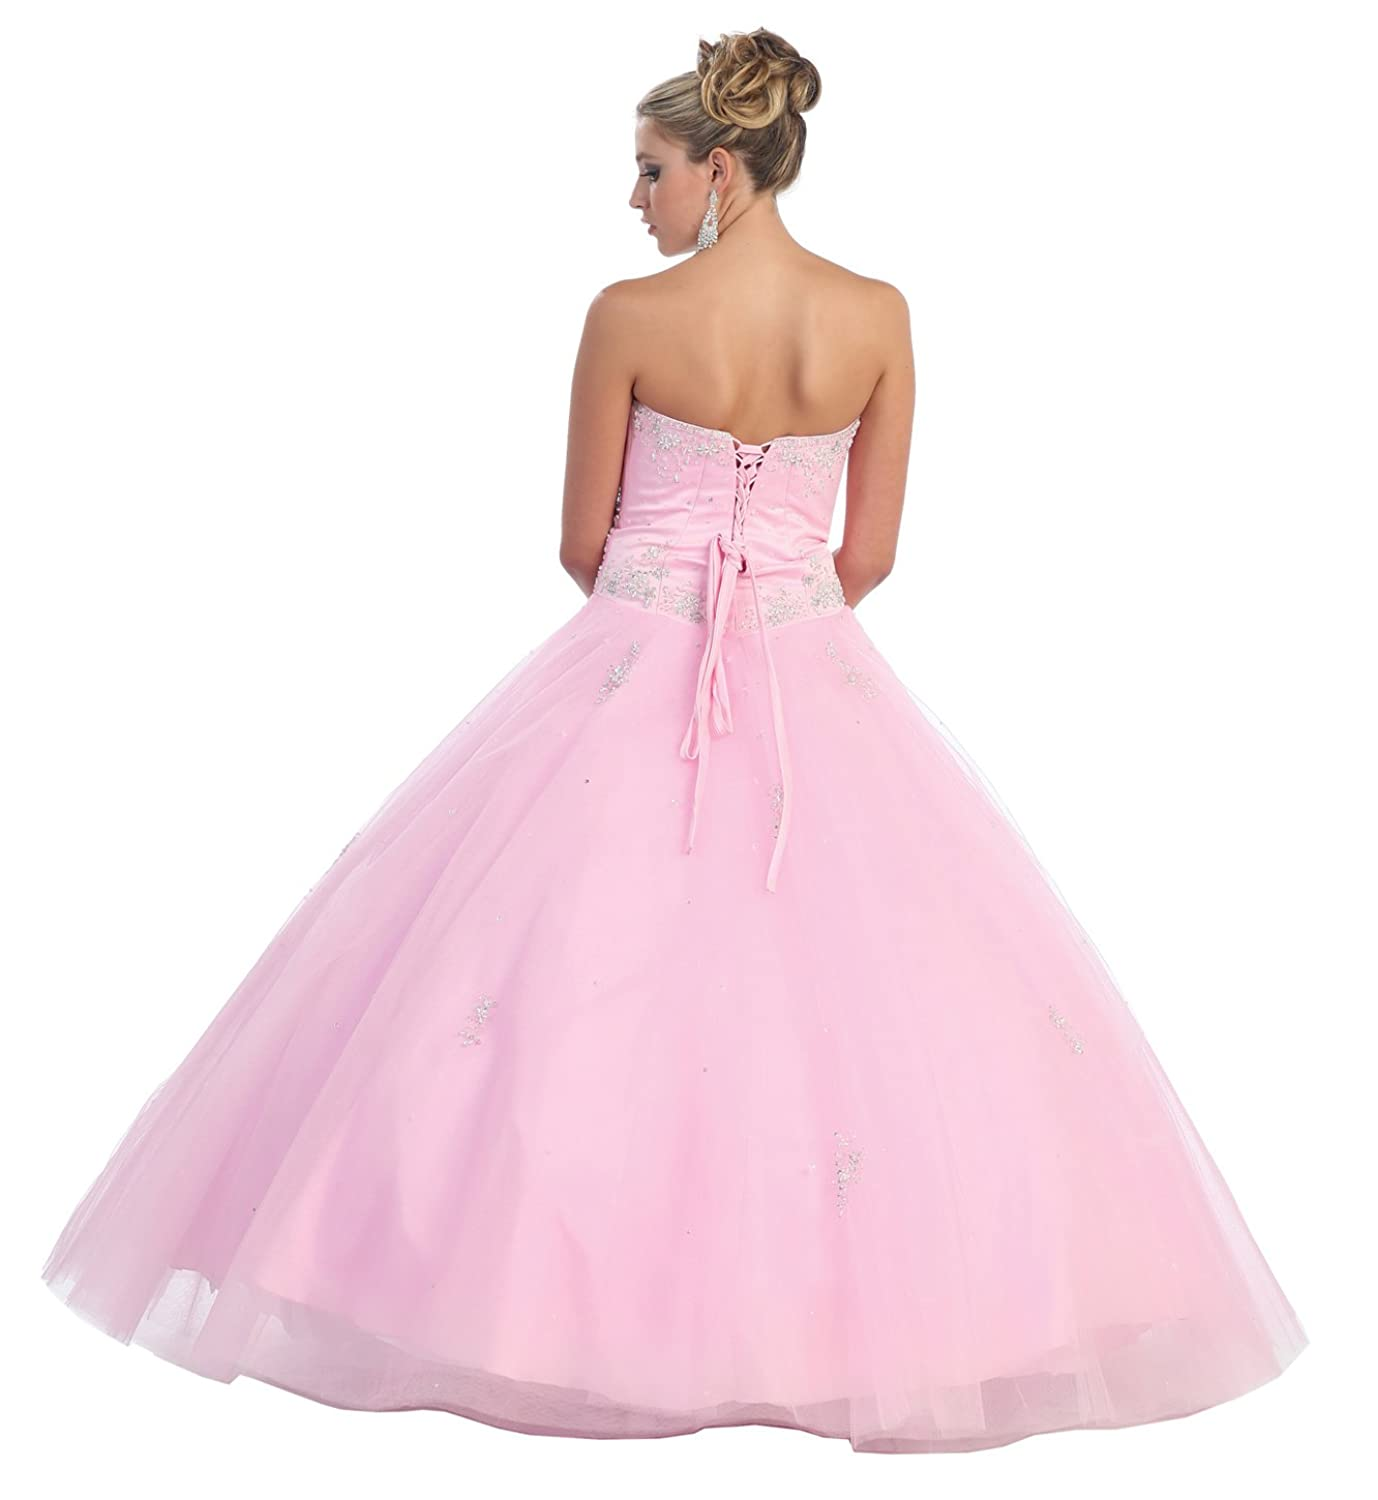 Amazon US Fairytailes Ball Gown Formal Prom Strapless Wedding Dress 2586 Clothing